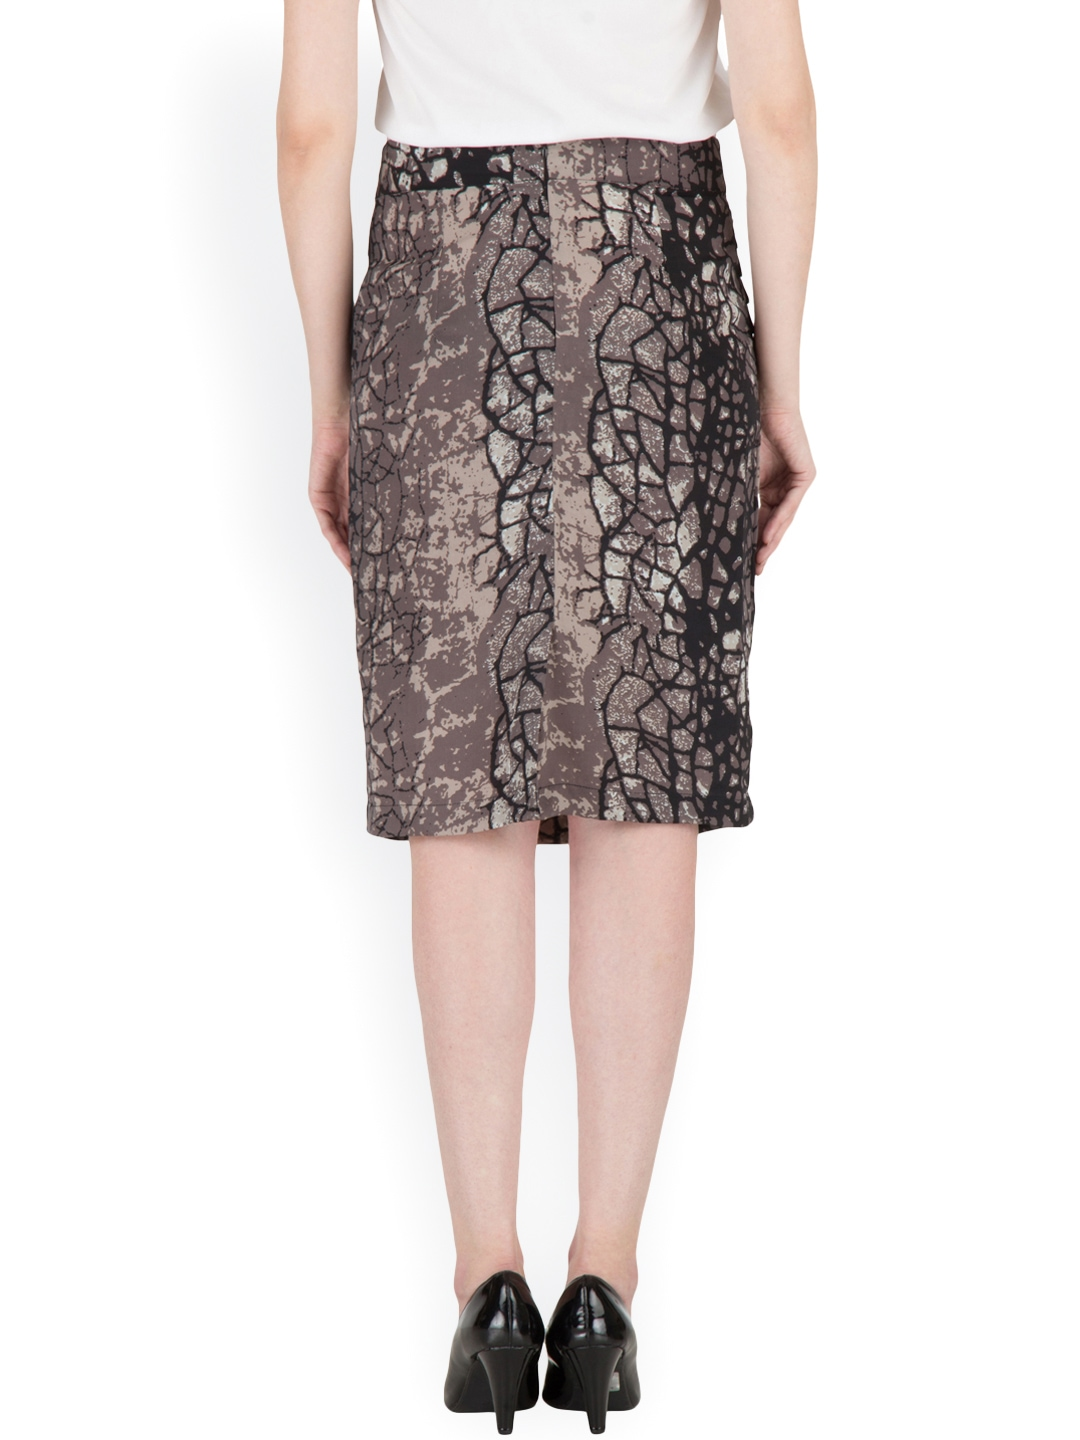 Pencil skirts in solid black, taupe, navy or camel are the most appropriate for business, but cute pencil skirts with a pattern are popular too. They give off a professional, more creative vibe than a plain colored pencil skirt.